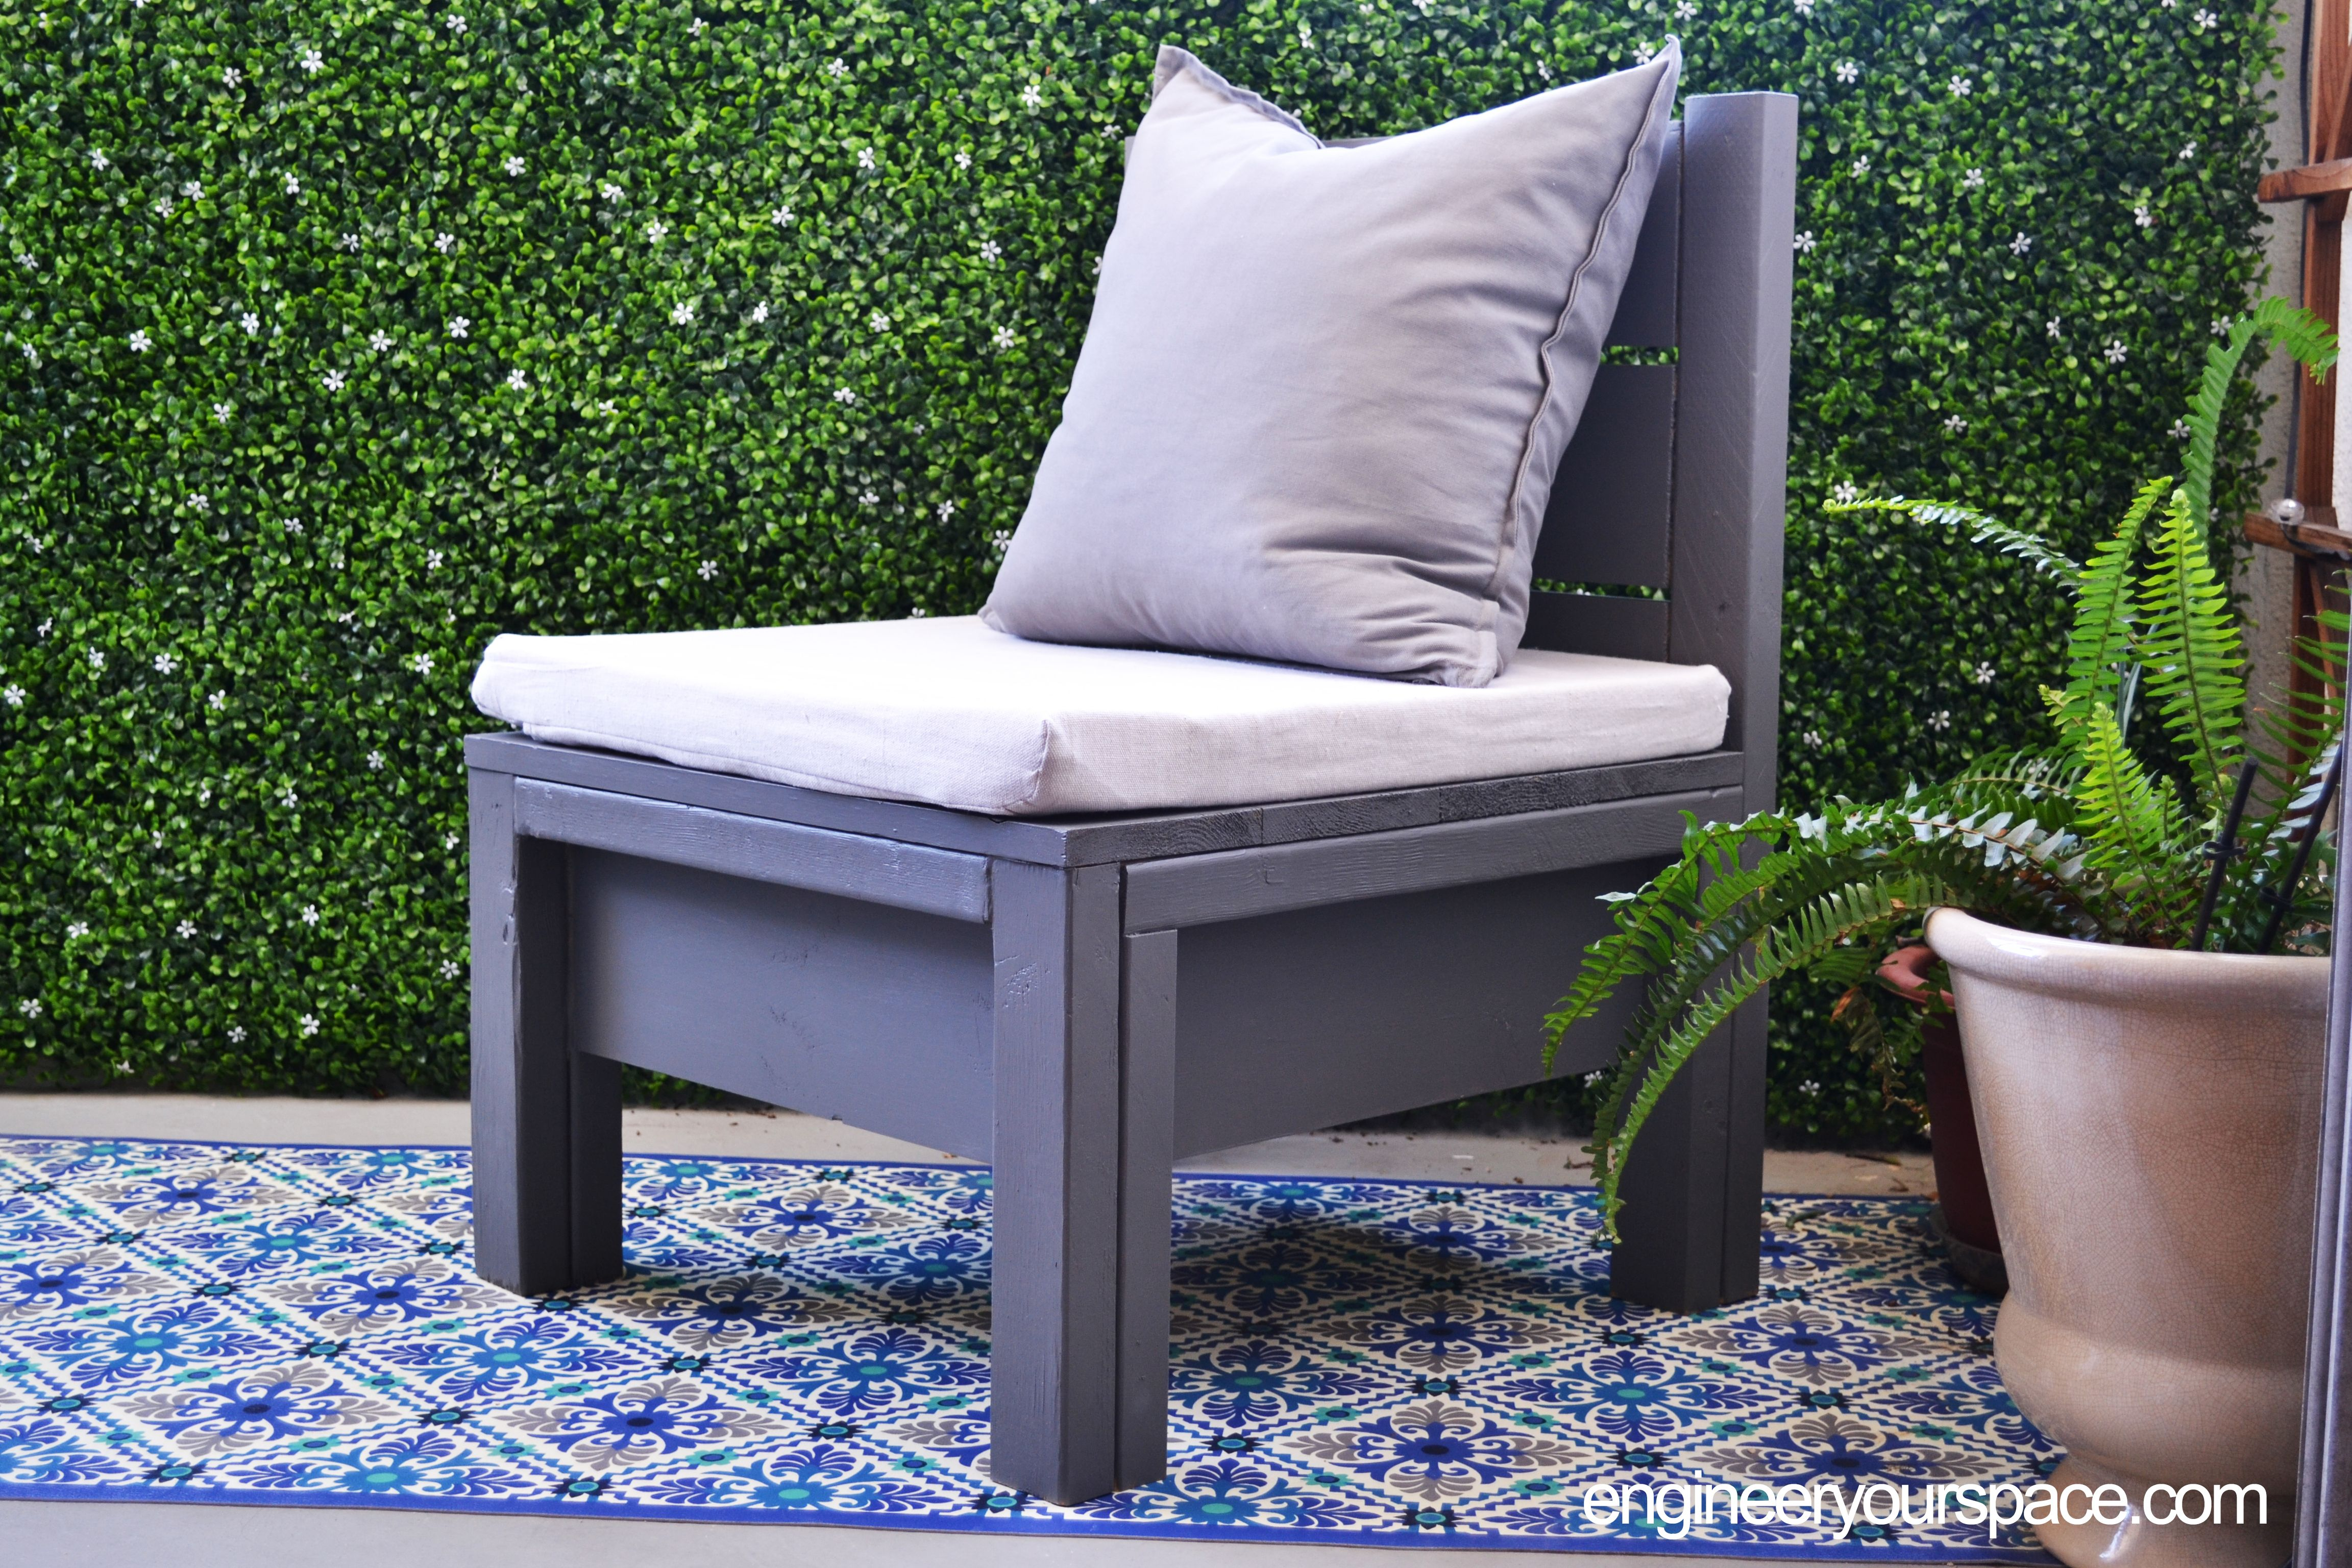 simple diy outdoor chair perfect for small balconies or patios by rh pinterest com